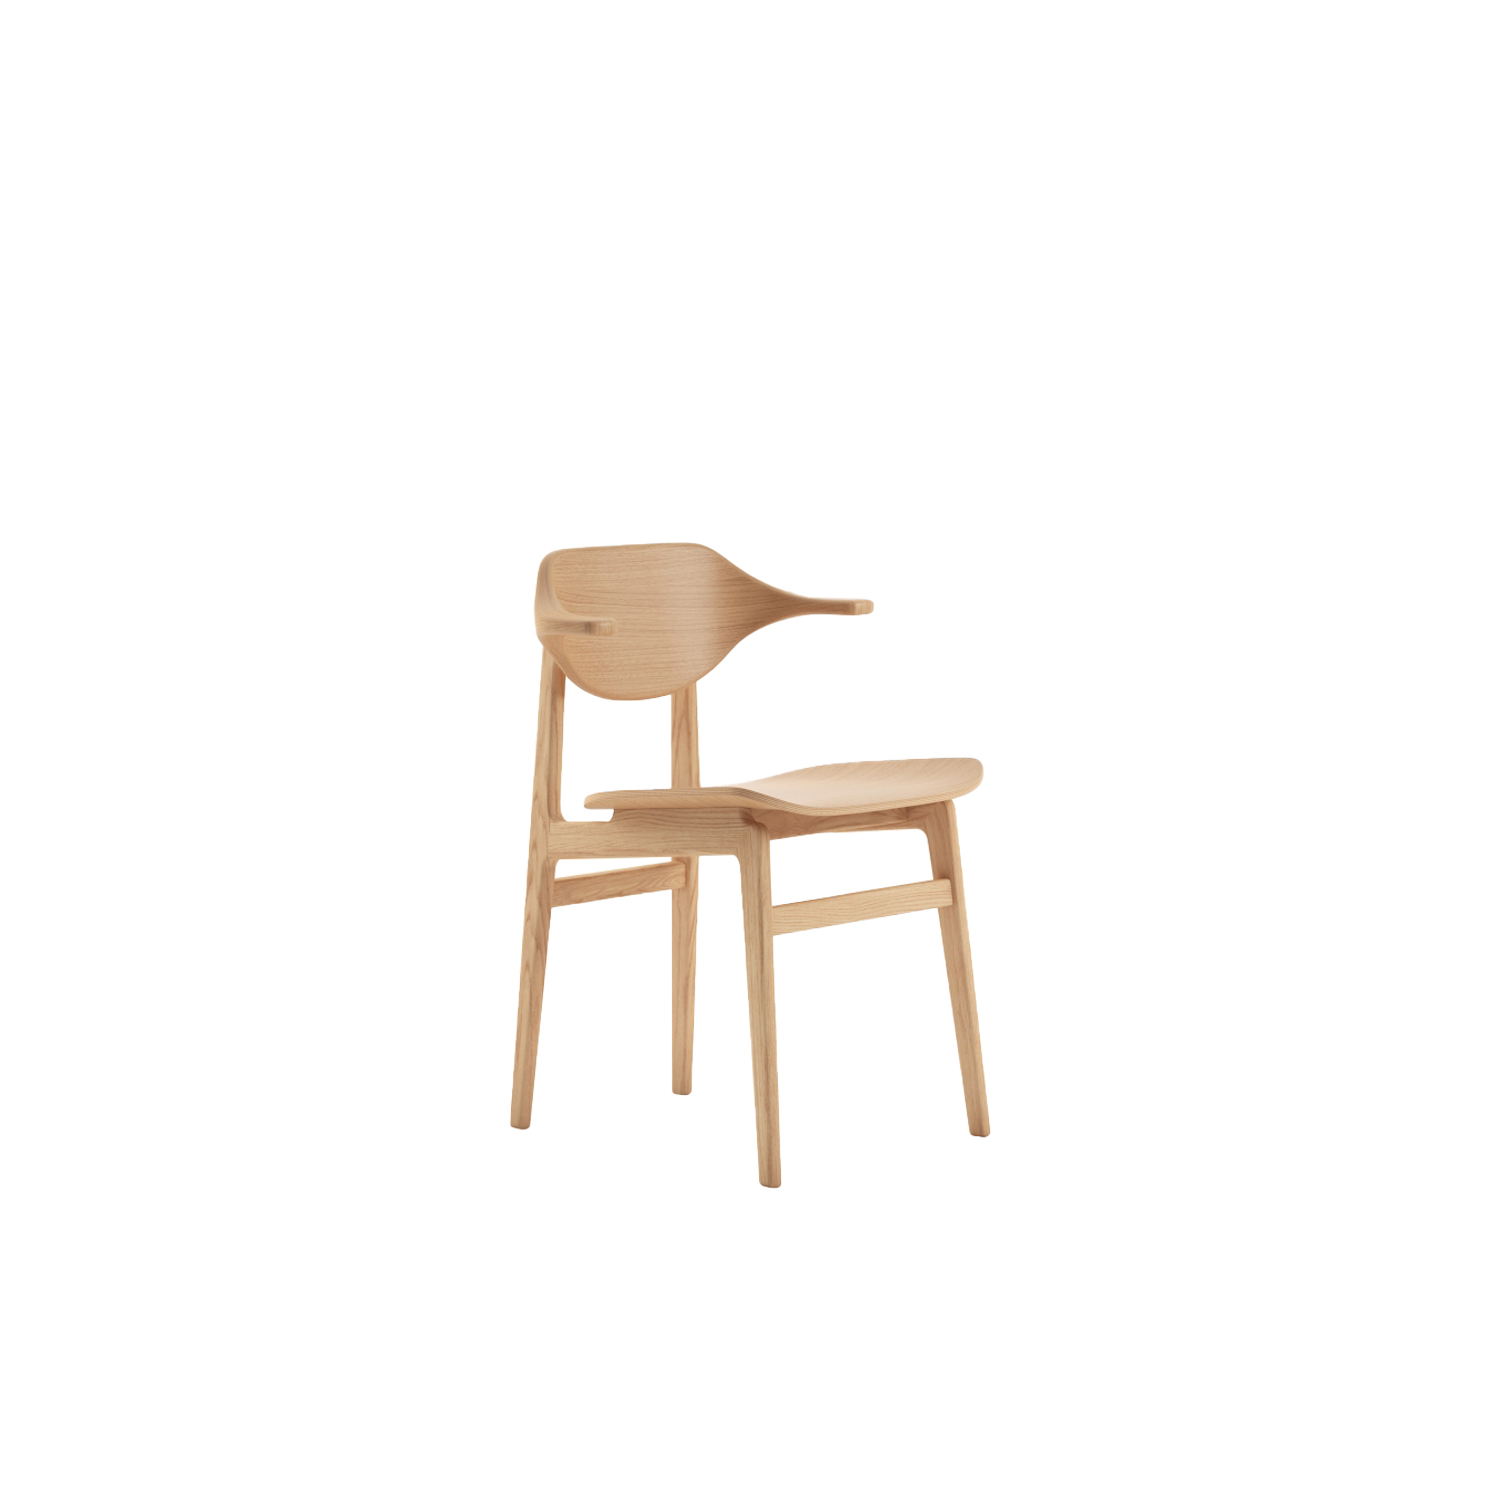 Buffalo Dining Chair - Buffalo is the latest edition to the family of dining chairs based on the proven NY11 frame. The back is made from multiple layers of oak veneer forming the characteristic buffalo horn shape. The back and armrest gently curves around the body and provides superior comfort.  Buffalo comes with legs of solid oak and a seat of laminated oak veneer. The seat is available with various upholstery options. | Matter of Stuff